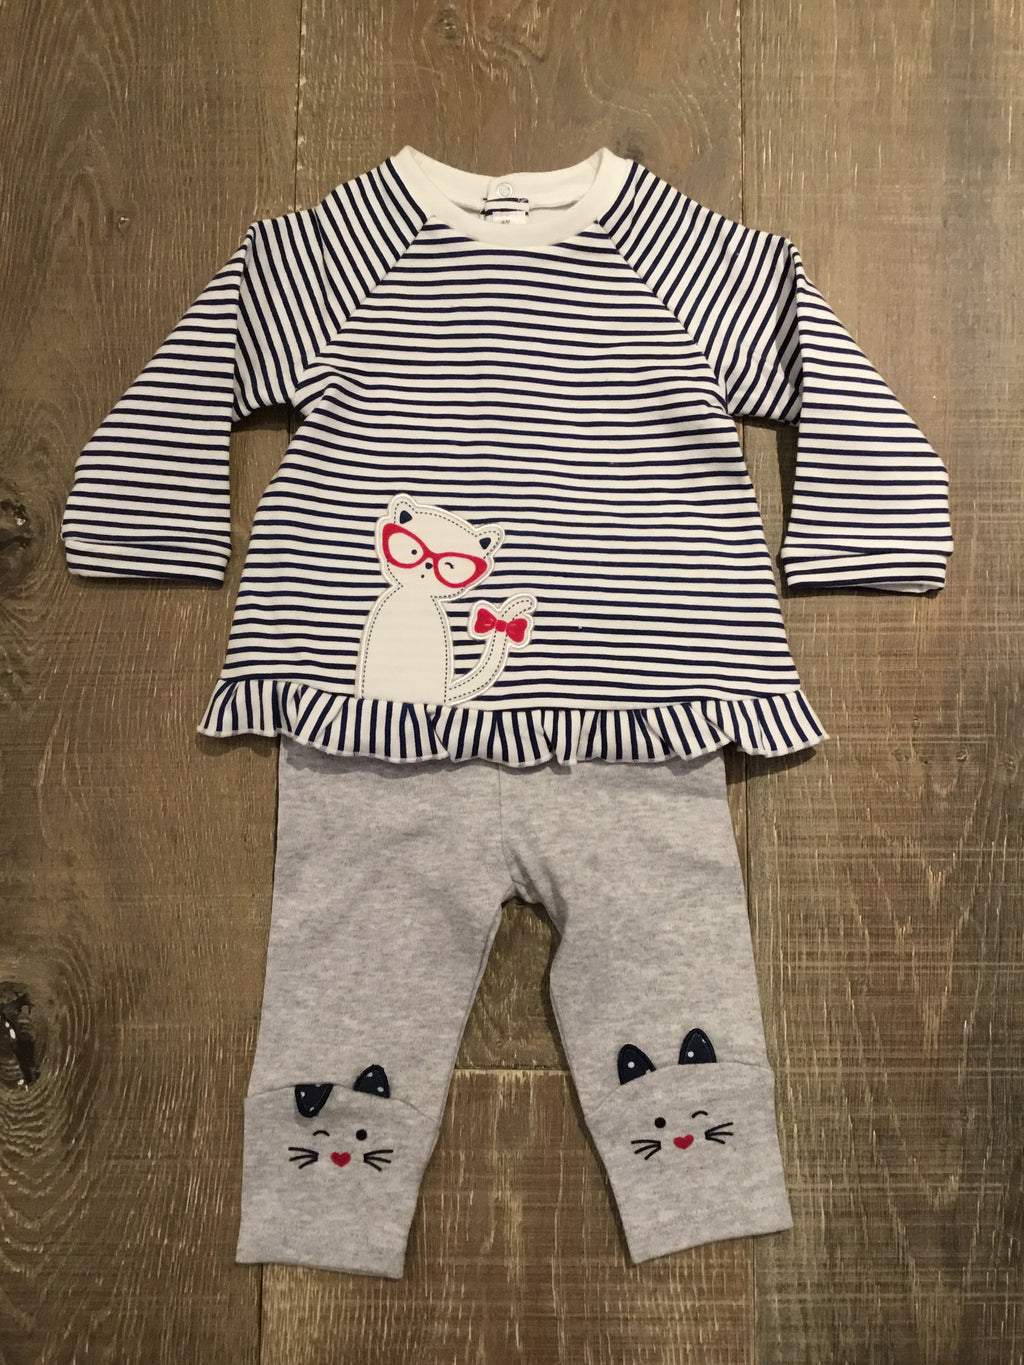 Striped Kitty Wink Top with Grey Kitty Leggings